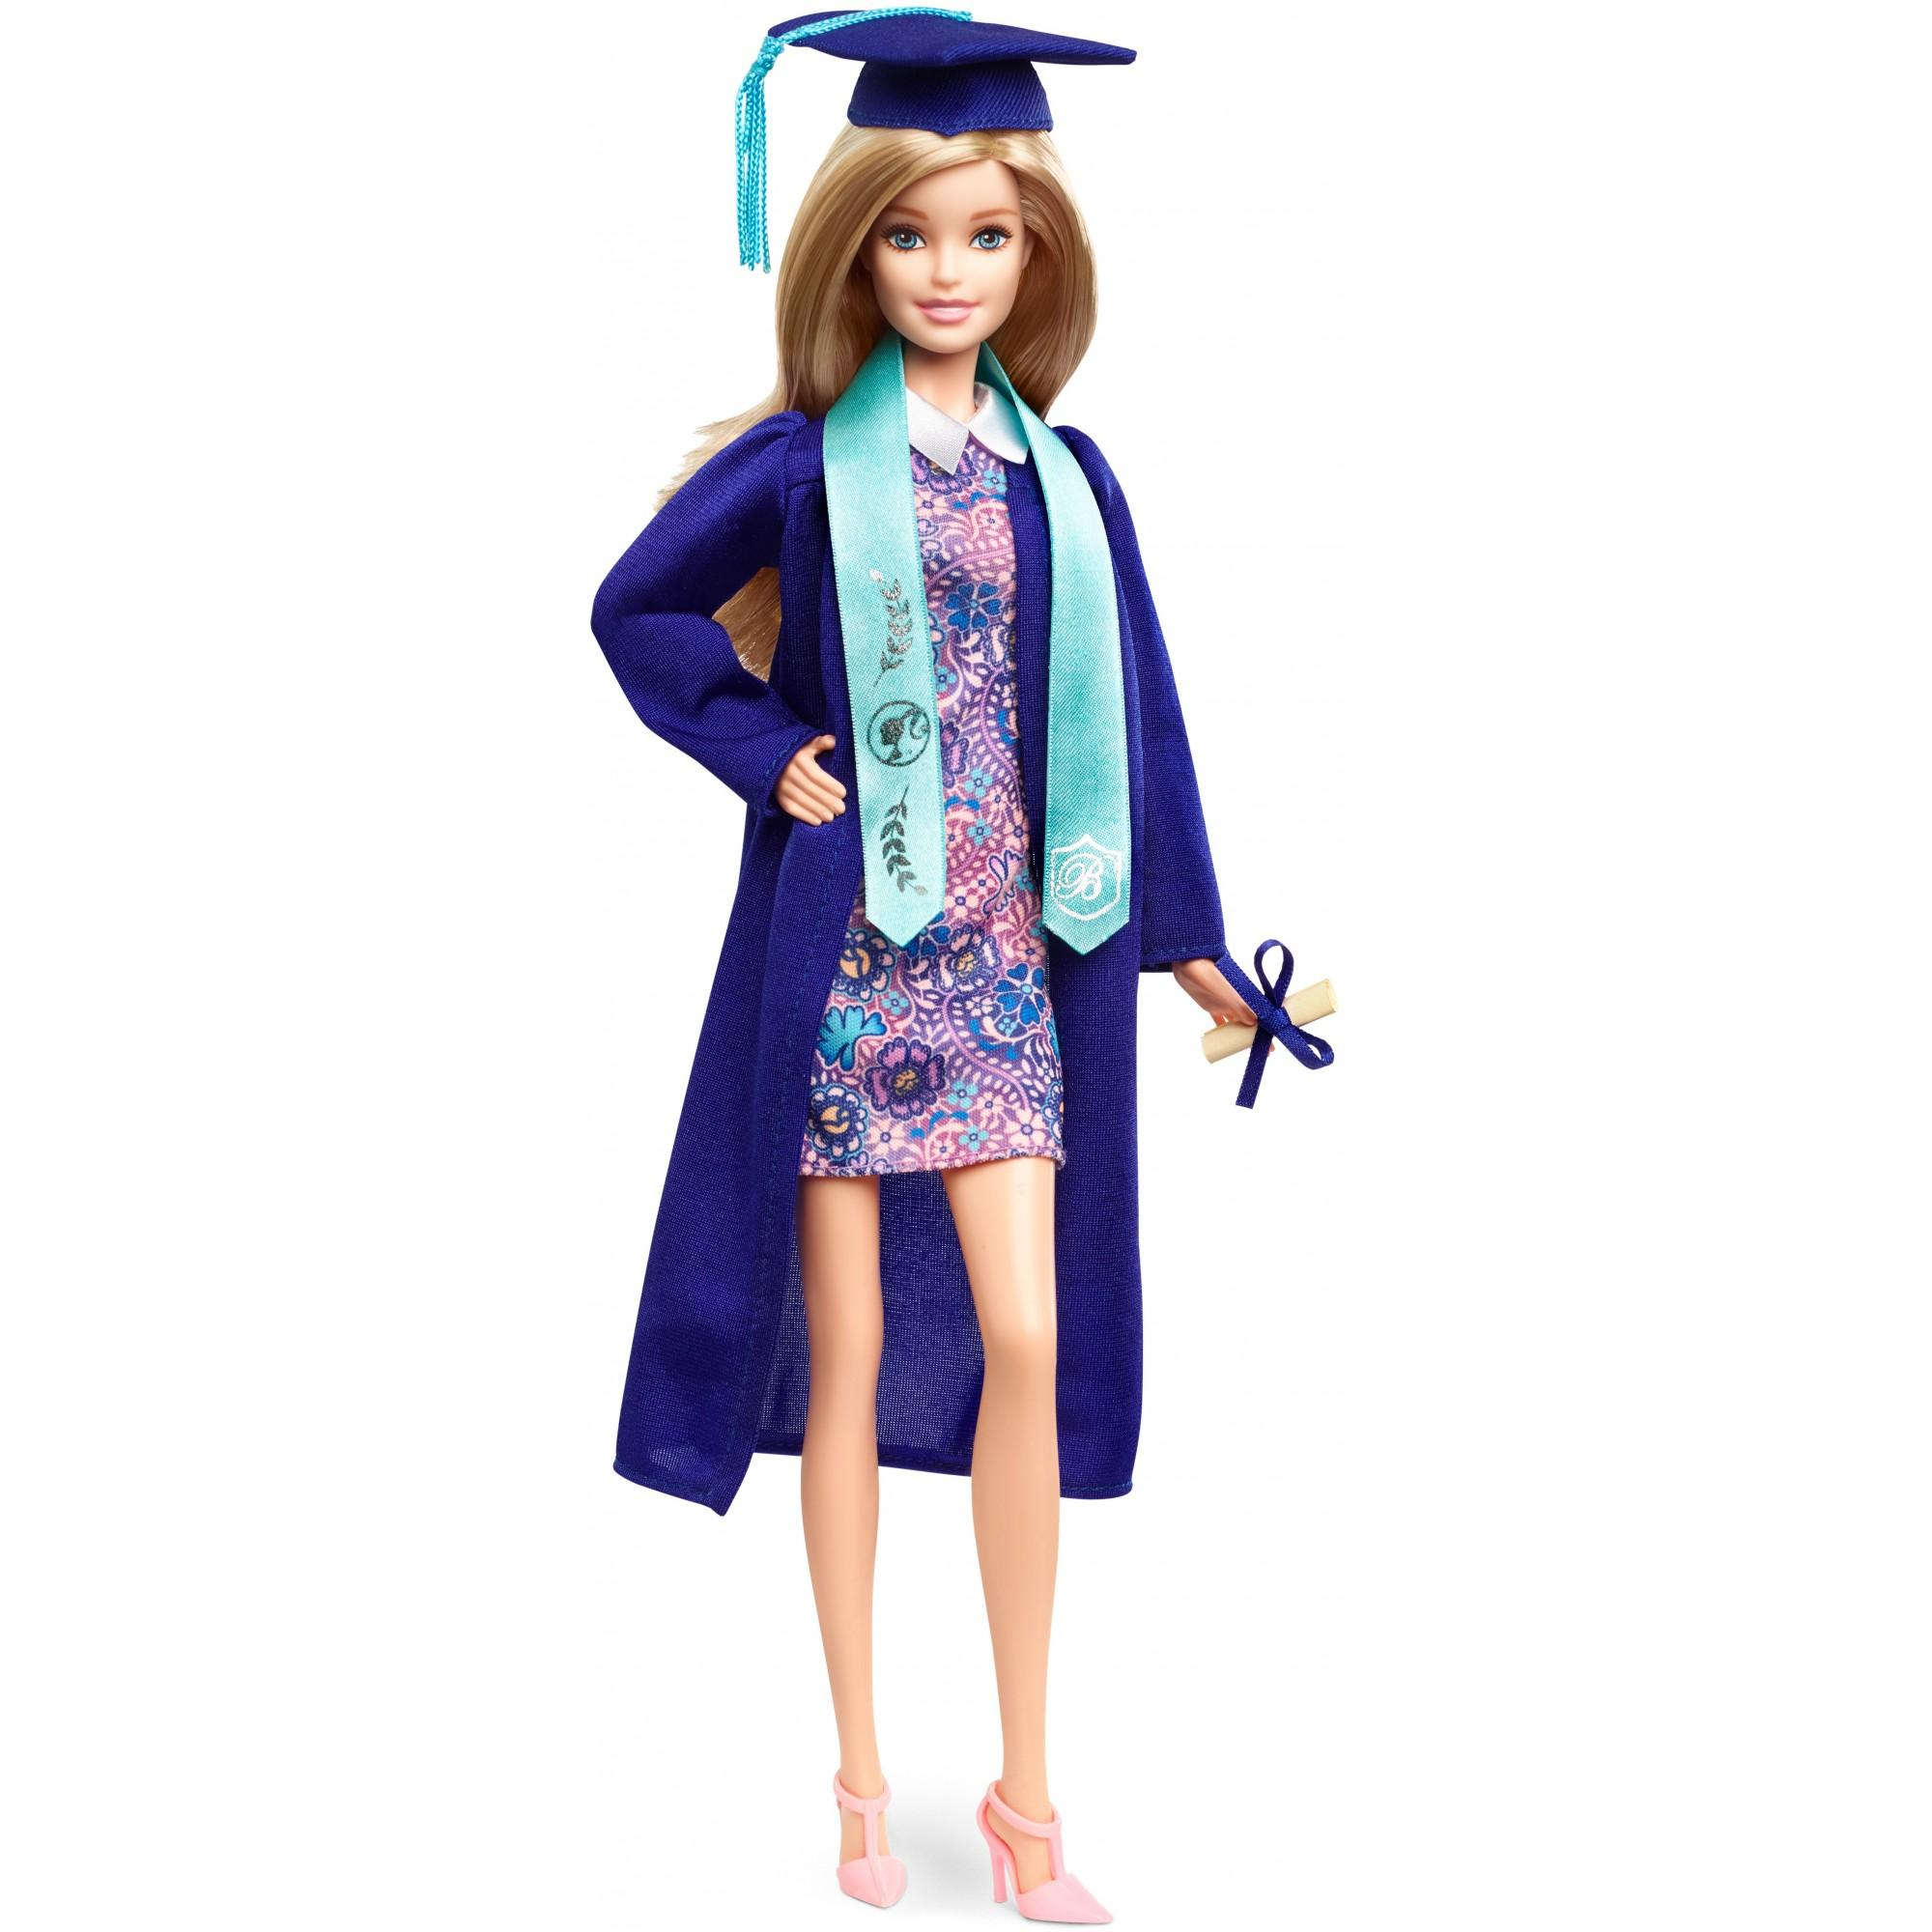 Barbie Graduation Day Doll, Blonde